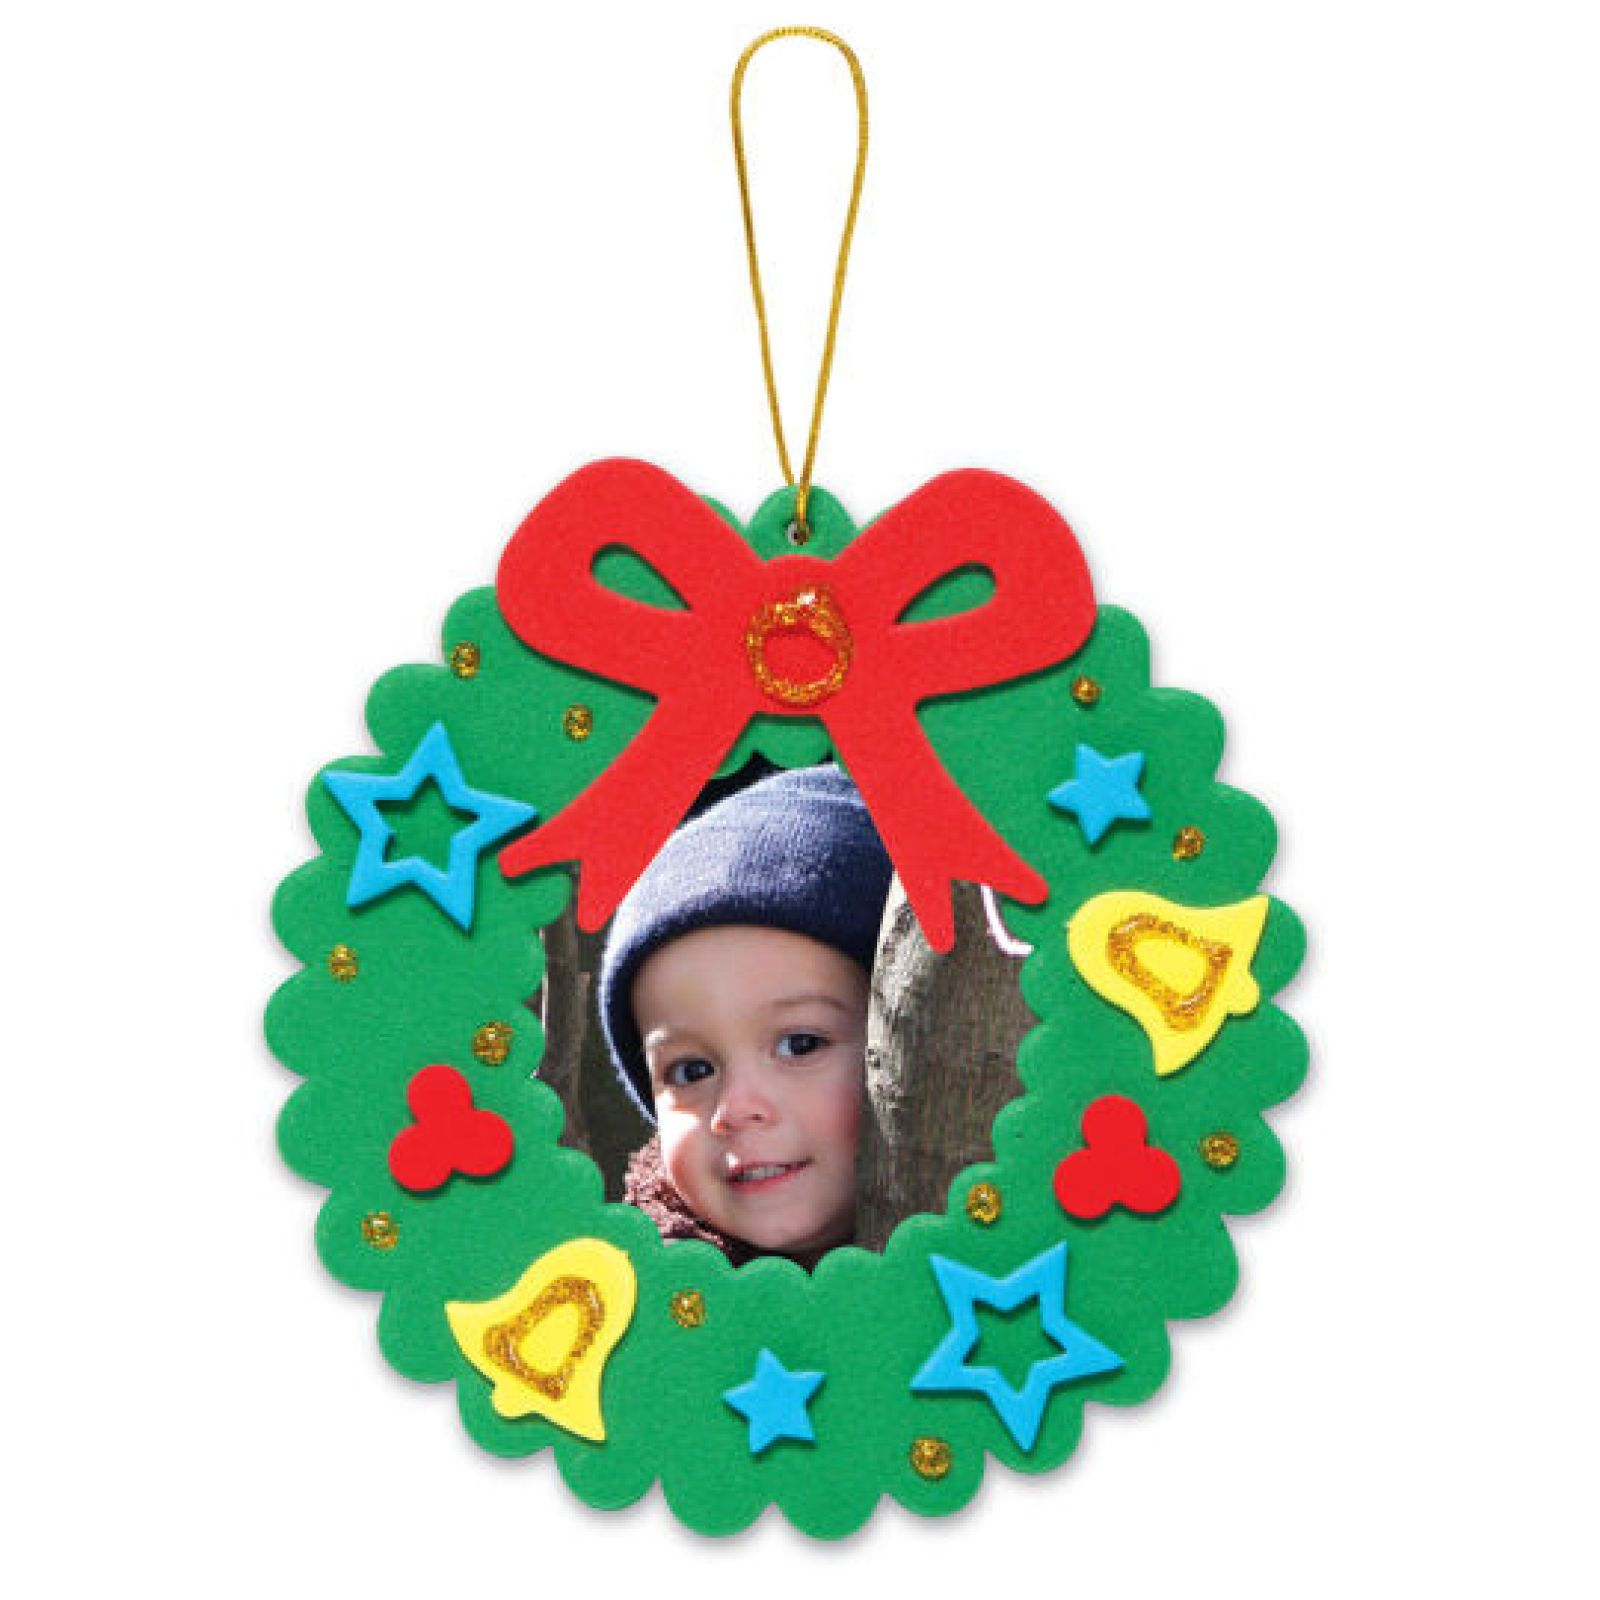 Creatology holiday wreath frame foam ornament kit for Photo frame ornament craft